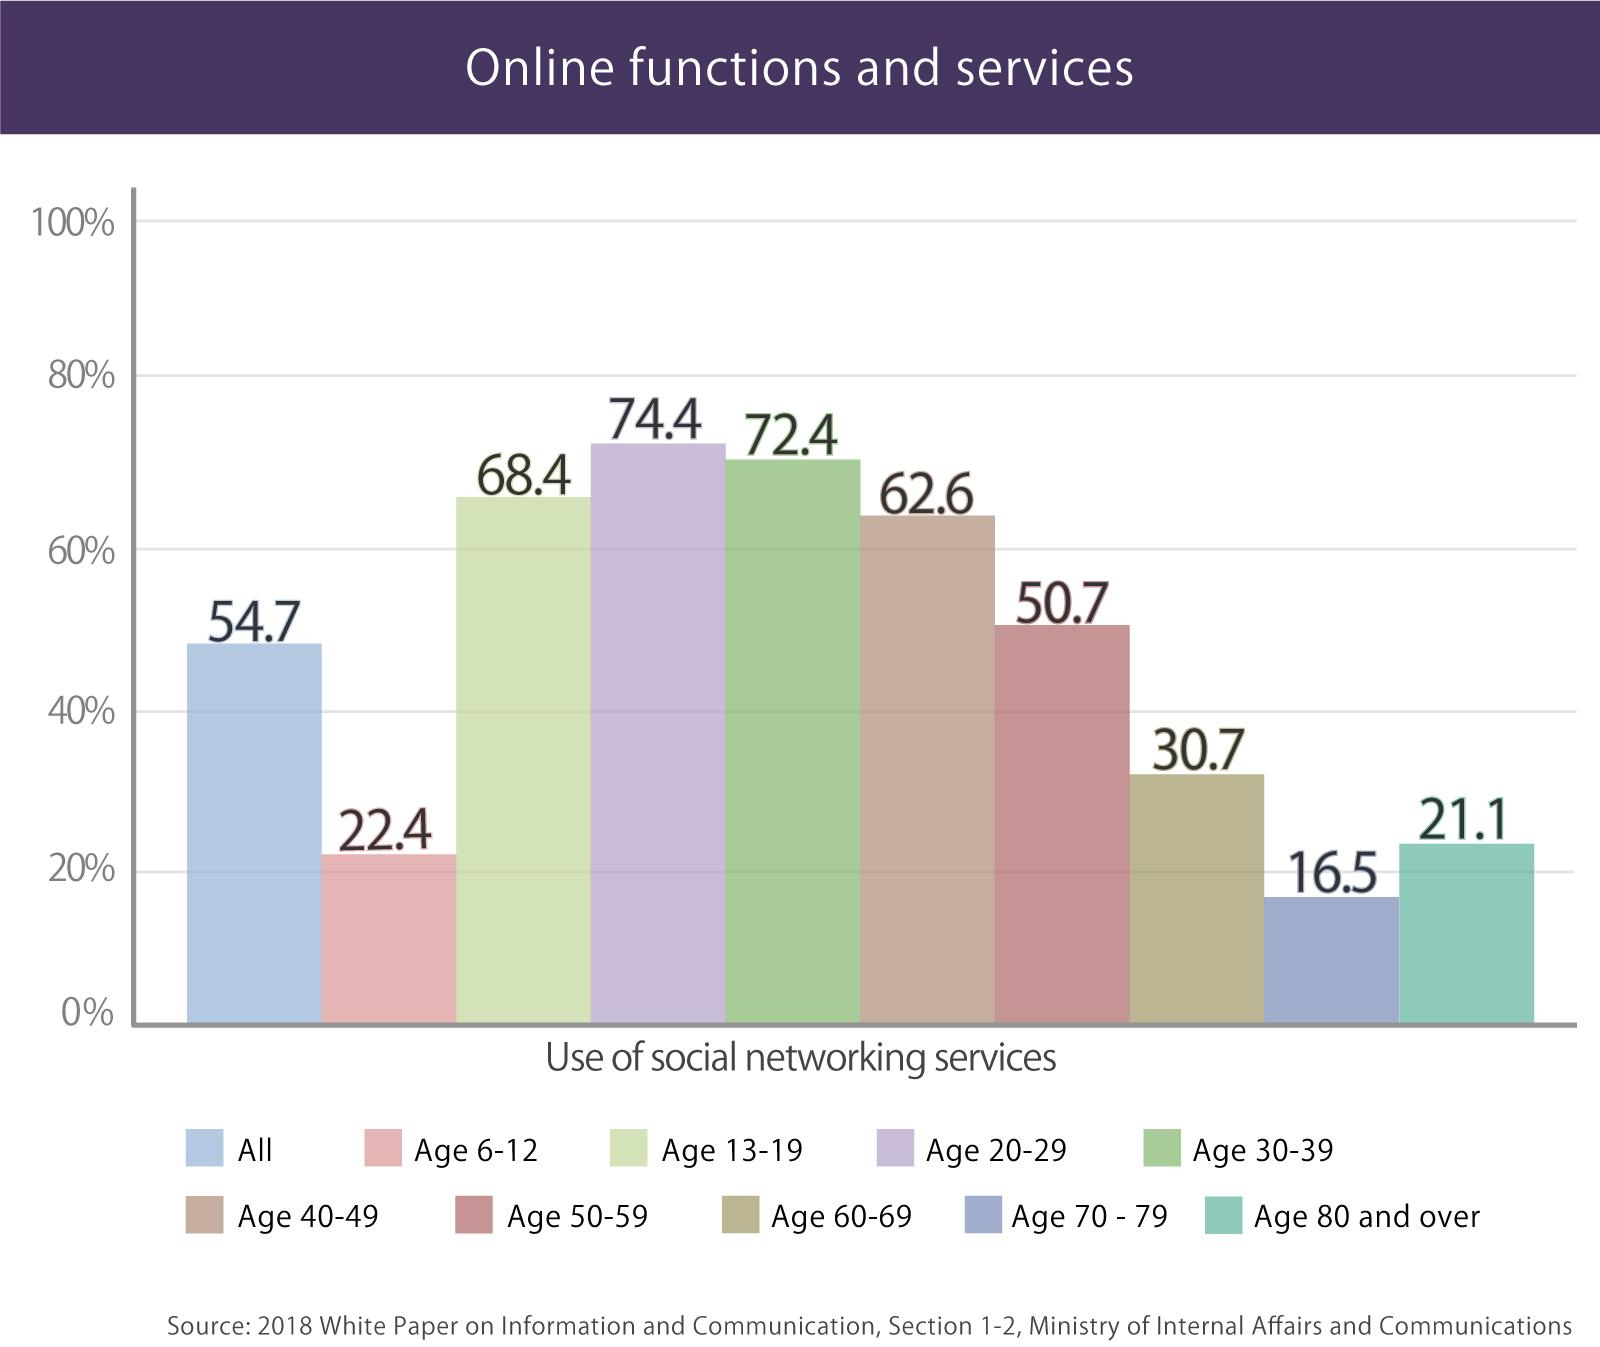 image: Online functions and services used in Japan